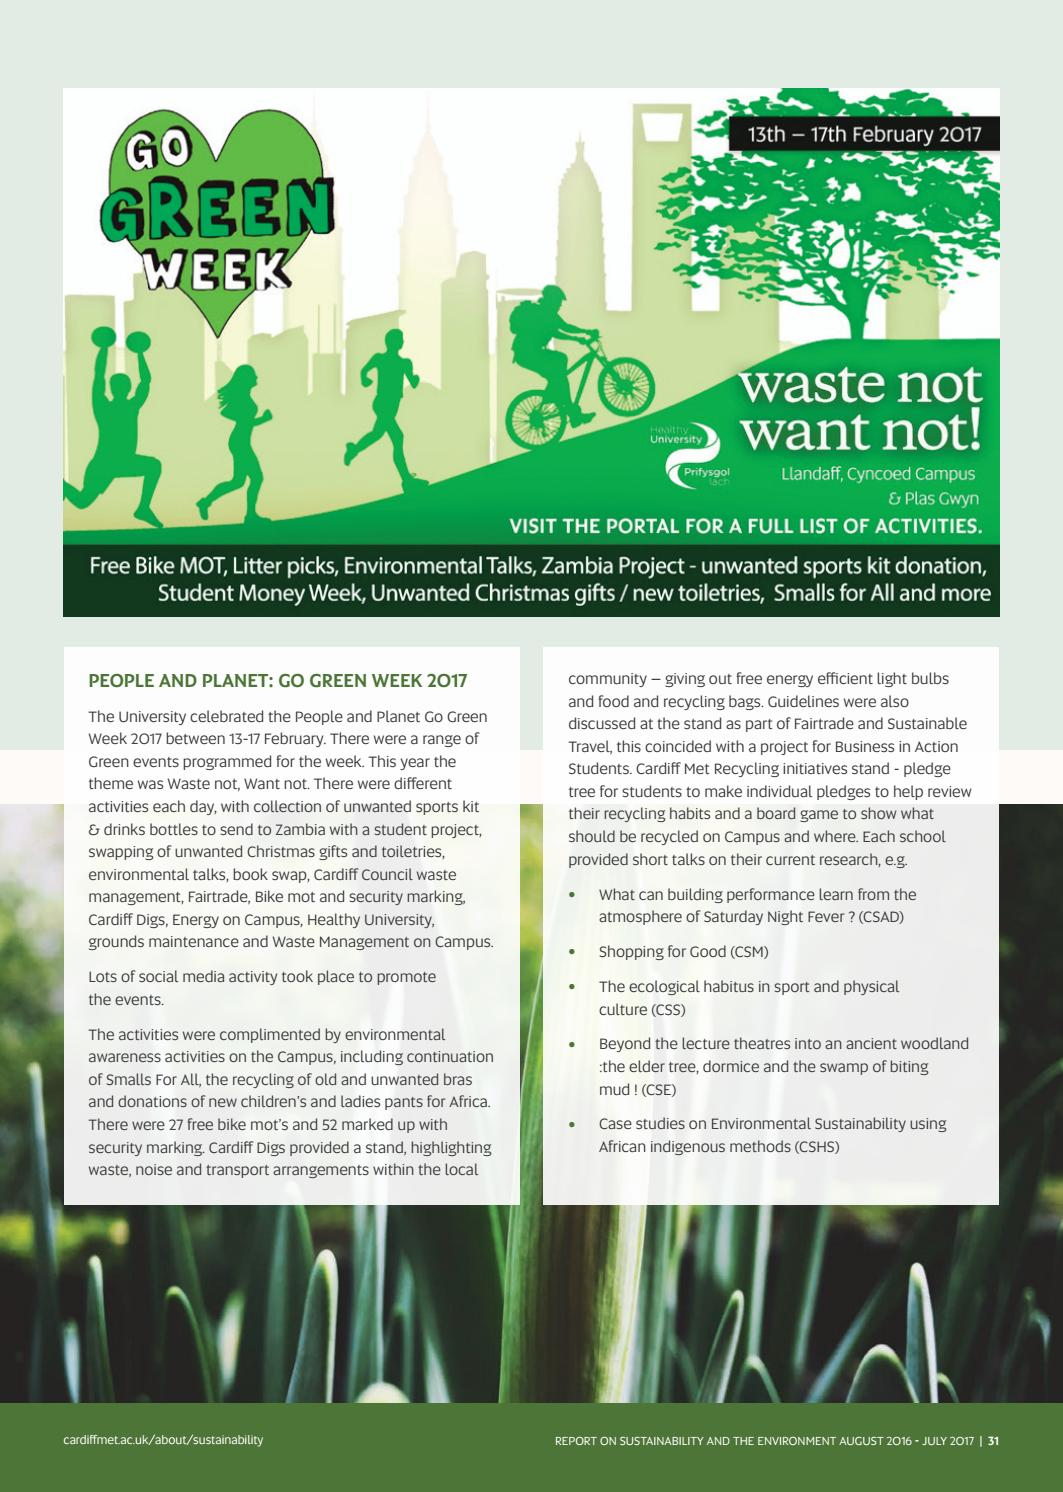 Report on Sustainability and the Environment - August 2016 - July